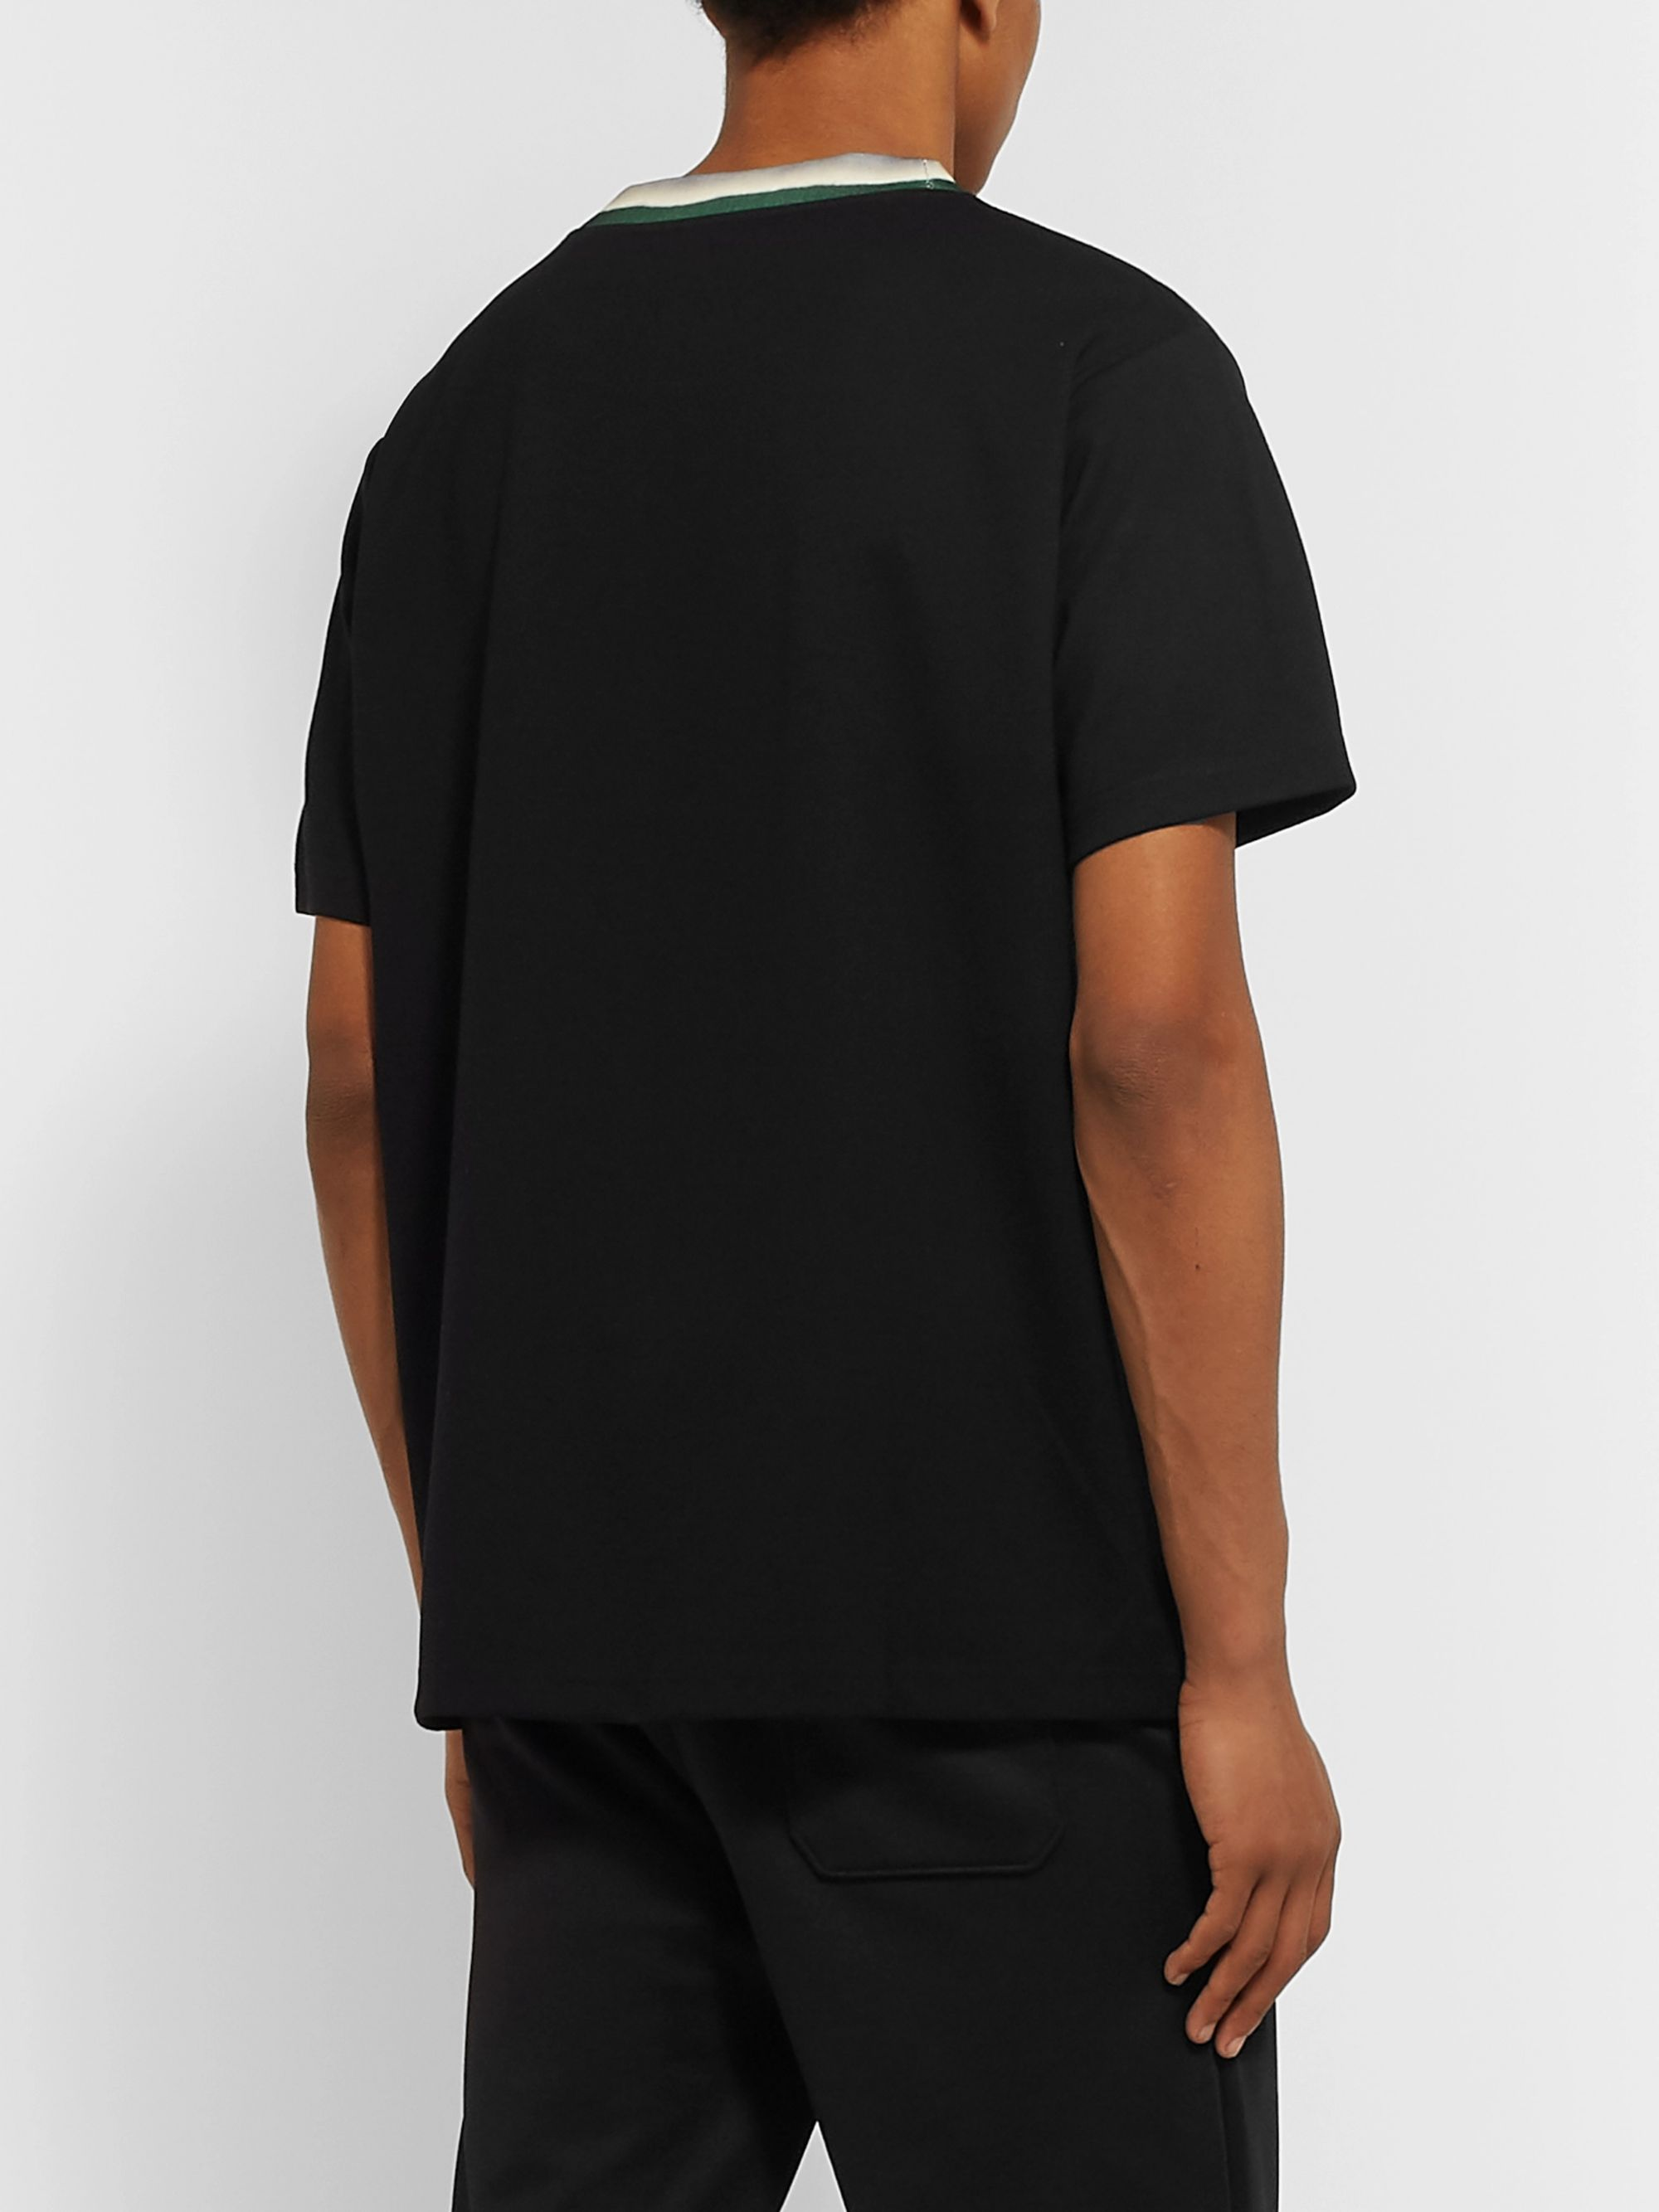 Acne Studios Nash Logo-Appliquéd Stretch-Jersey T-Shirt